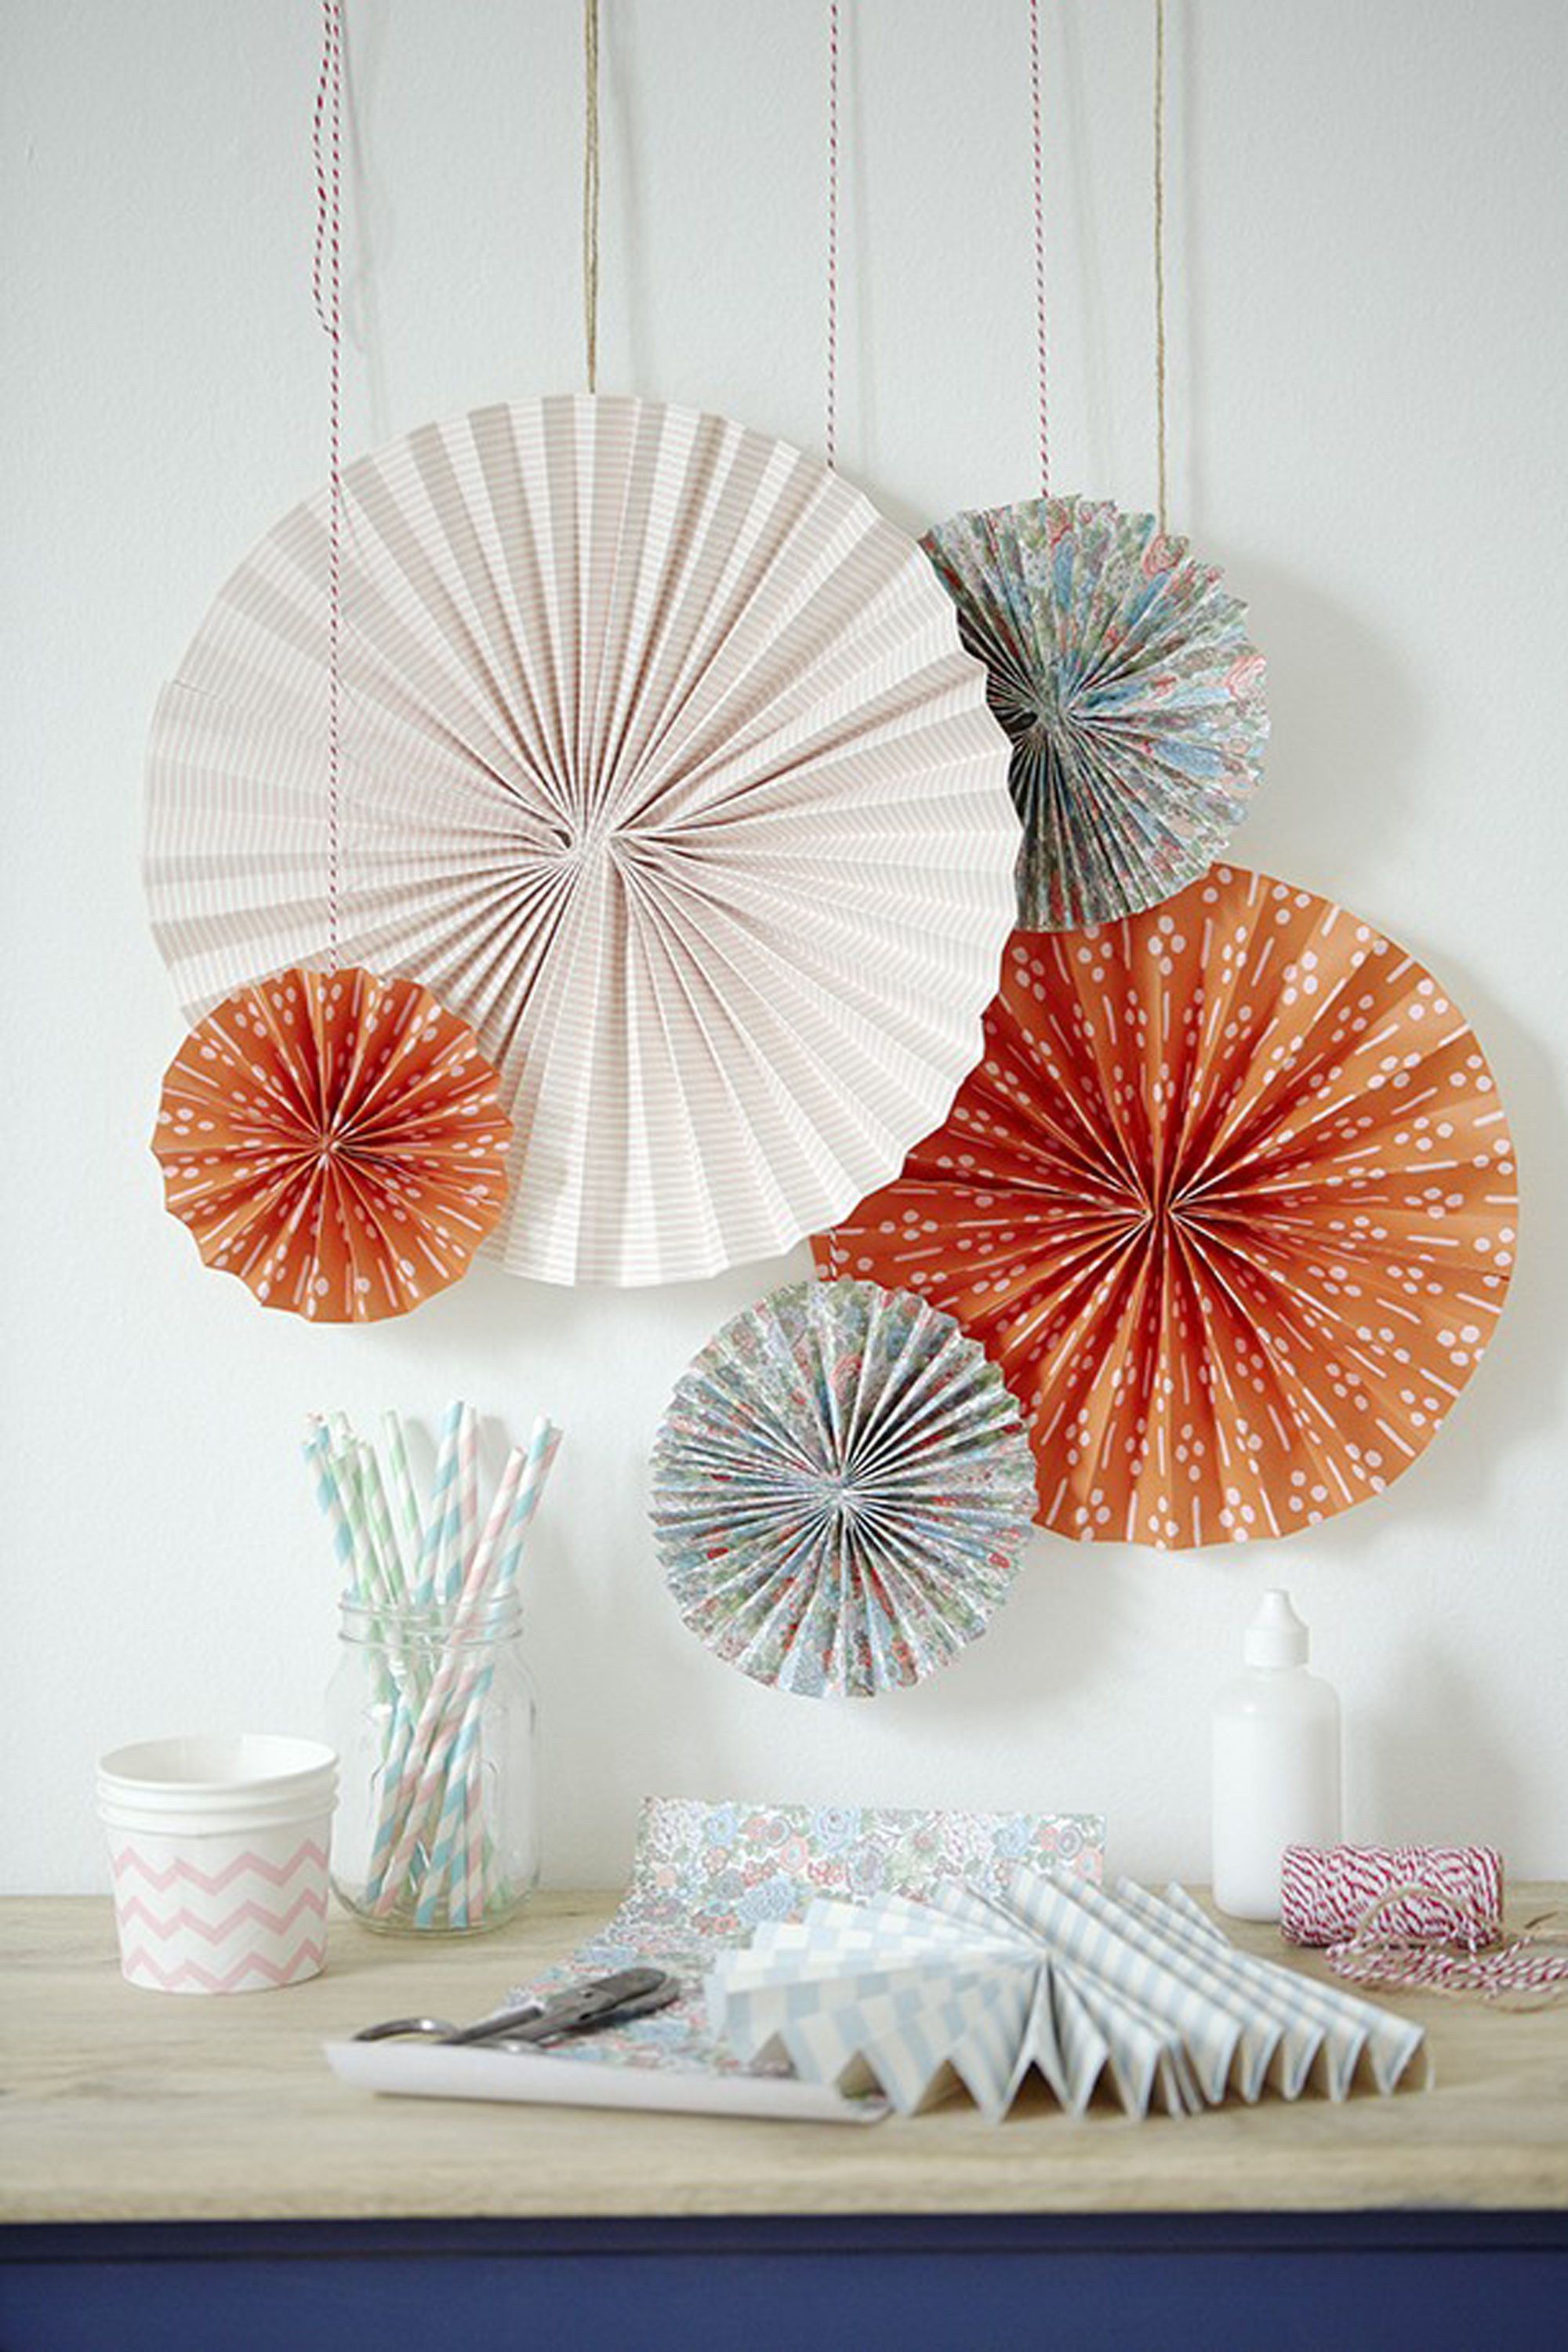 Diy Decorating Crafts 35 fun summer crafts to make - easy diy project ideas for summer